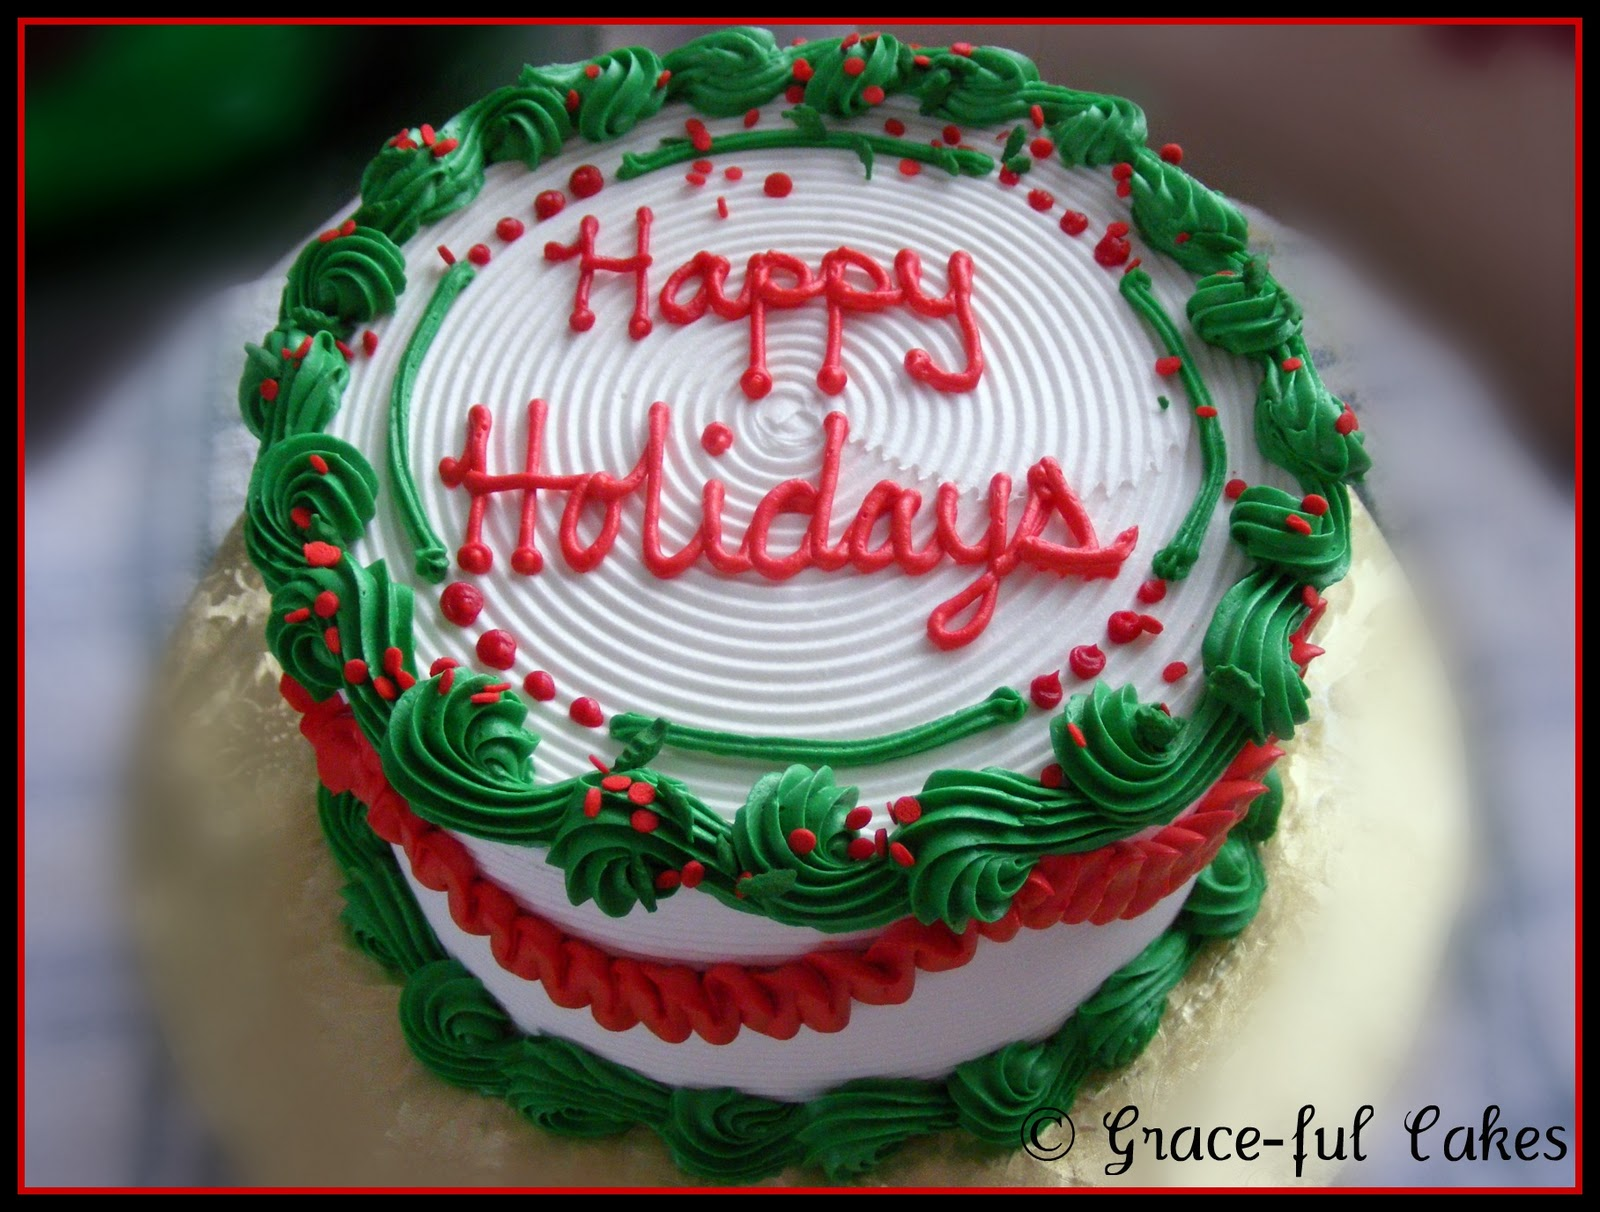 Design A Cake Christmas Opening Times : Christmas Cakes & Cupcakes Grace-ful Cakes